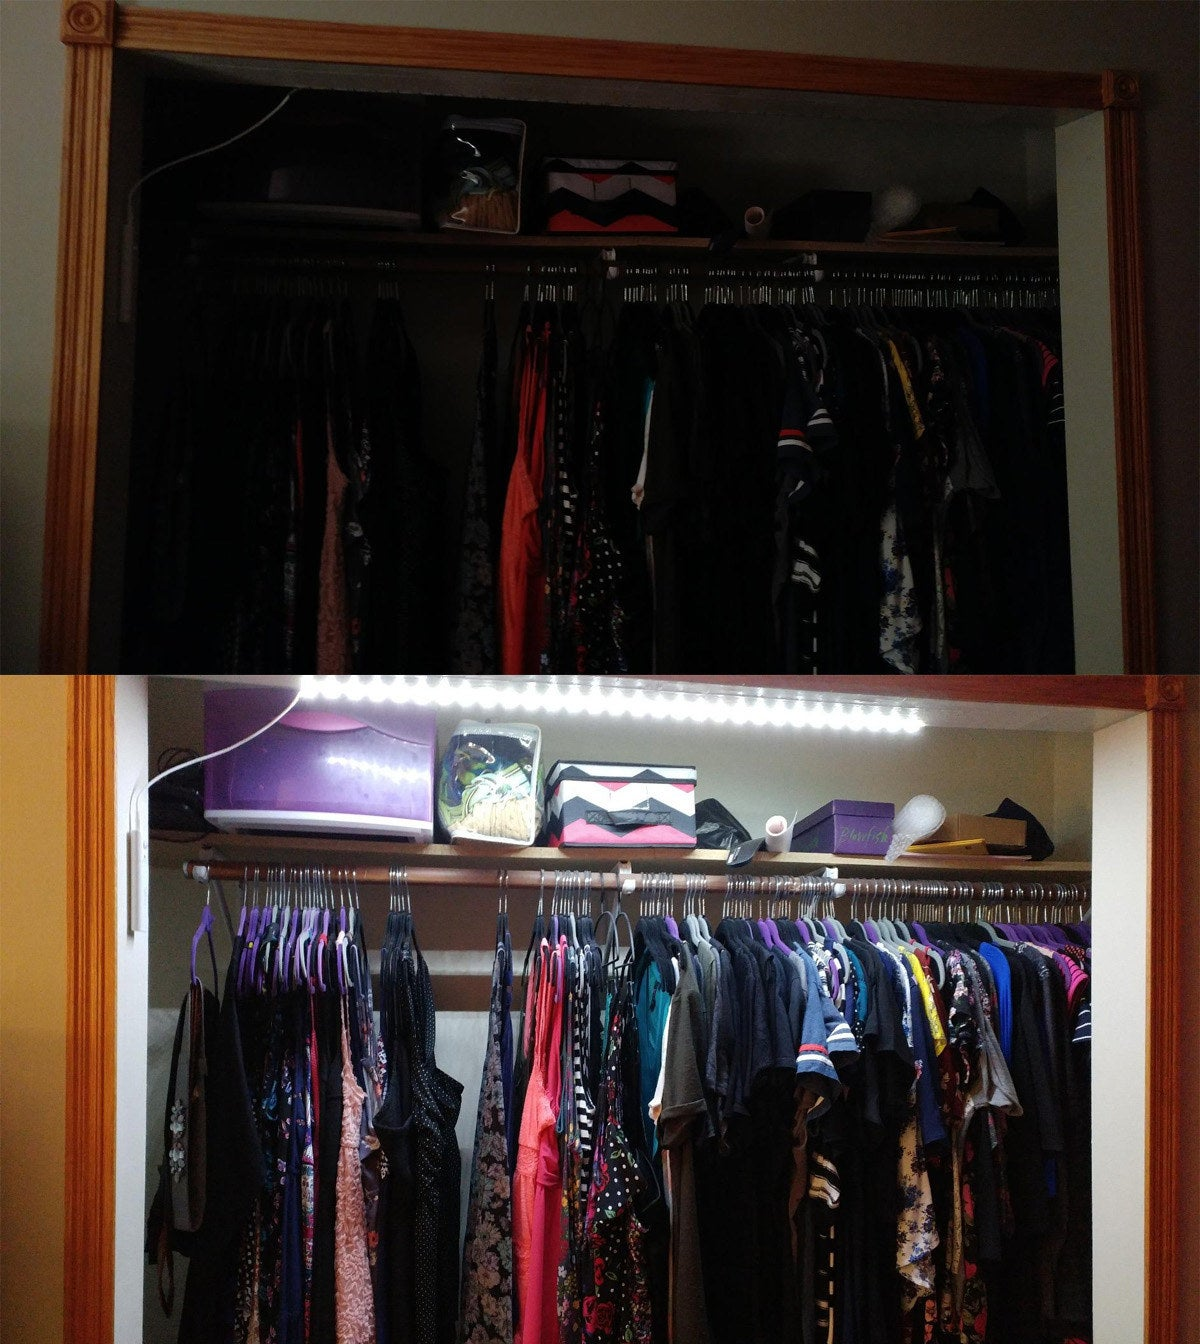 A reviewer showing the dark closet, unable to see anything inside and then showing the closet with the light strip illuminating all the clothing inside